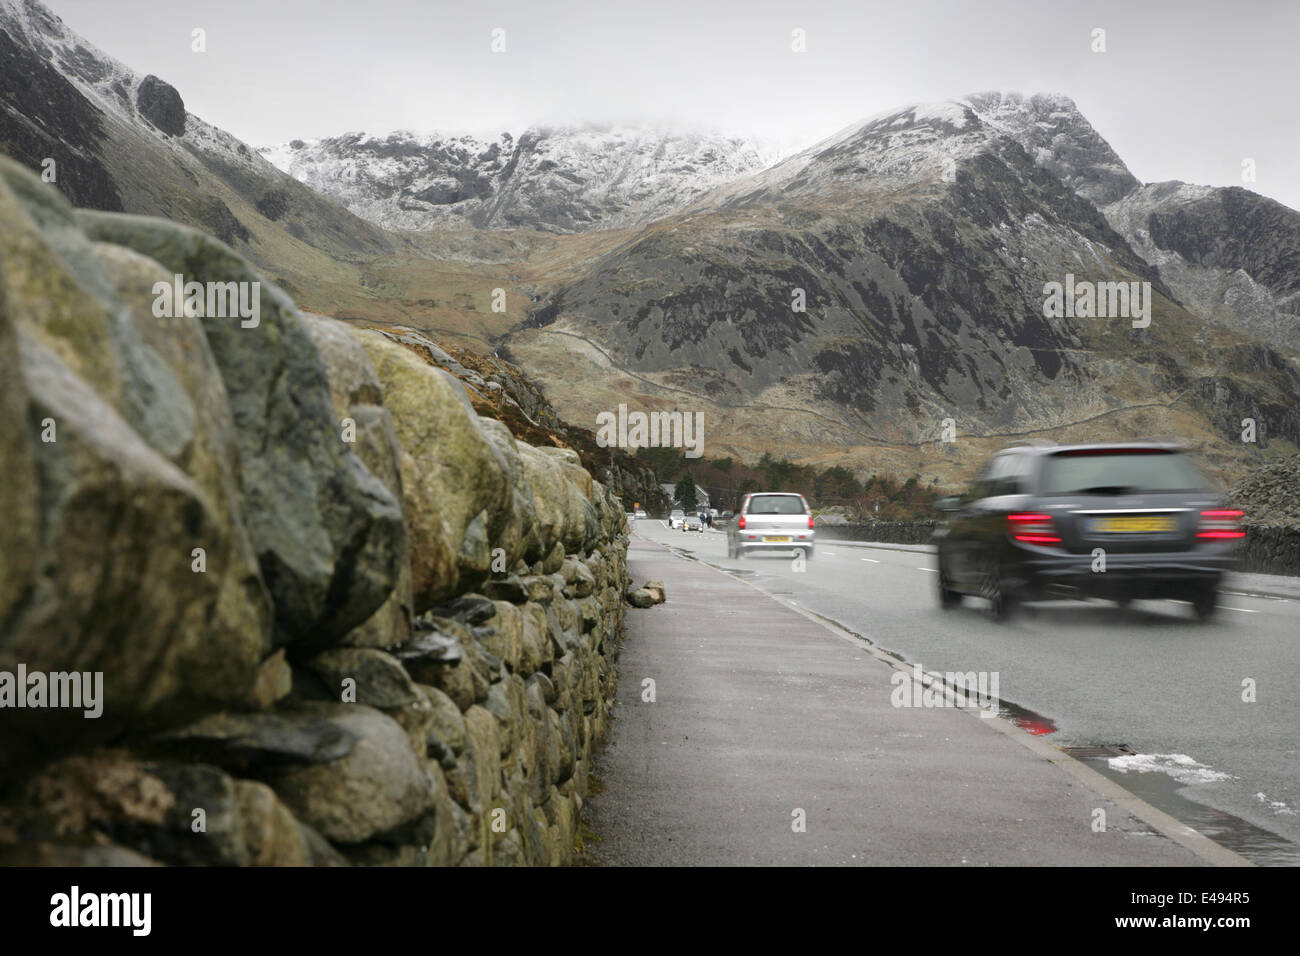 Traffic approaching Y Garn on the A5 main road, Sonwdonia, Wales. - Stock Image